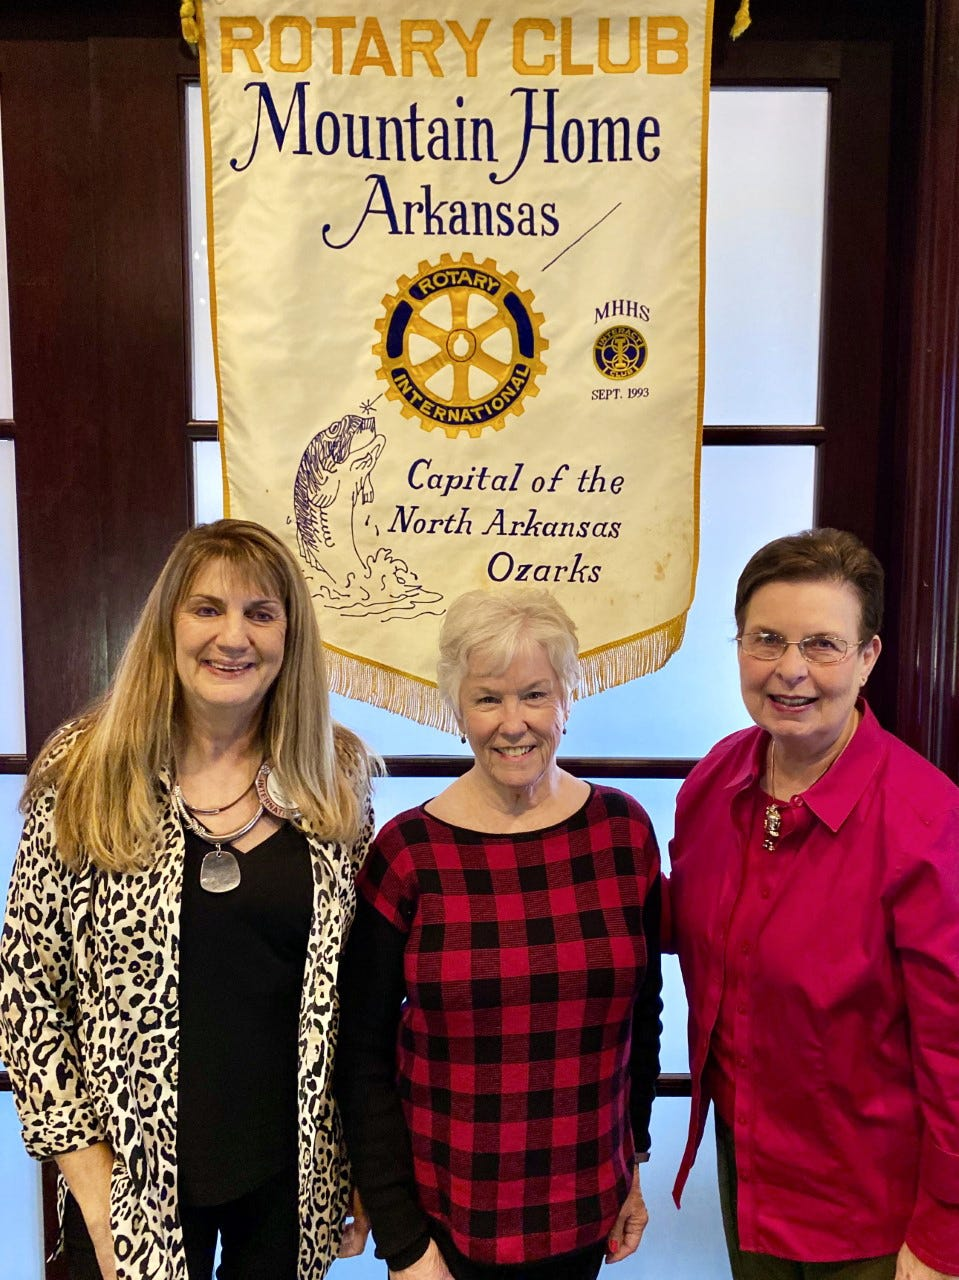 "The guest speakers on Thursday, Dec. 5 at the Mountain Home Rotary Club were Virginia Cornett and Sandy Priebe with the Arkansas Quilt Trail. Cornett spoke about the different quilt patterns that people may choose from or design their own that, after approved, are then painted in large squares on plywood and attached to barns, businesses, buildings, or fences. They hope to have ""barn quilts"" in every county in Arkansas, and are off to a good start with almost 100 currently on display in a five-county area. They gave each Rotarian a pamphlet and map that shows the patterns and addresses of the North Central Arkansas ""Quilt Trail"". Pictured above are MH Rotary President Kriss Yunker and guest speakers Virginia Cornett and Sandy Priebe."